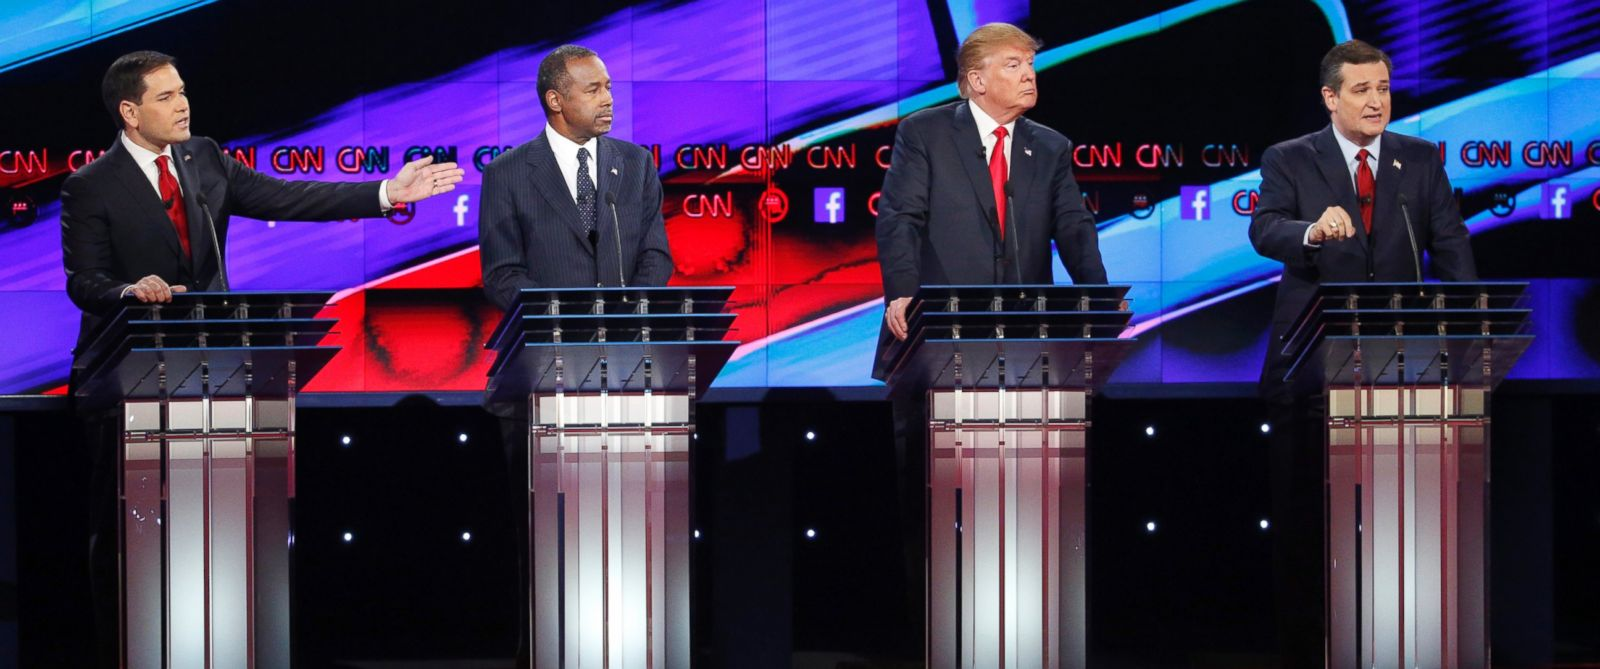 PHOTO: Marco Rubio, left, and Ted Cruz, right, both speak as Ben Carson, second from left, and Donald Trump, second from right, look on during the CNN Republican presidential debate at the Venetian Hotel & Casino, Dec. 15, 2015, in Las Vegas.